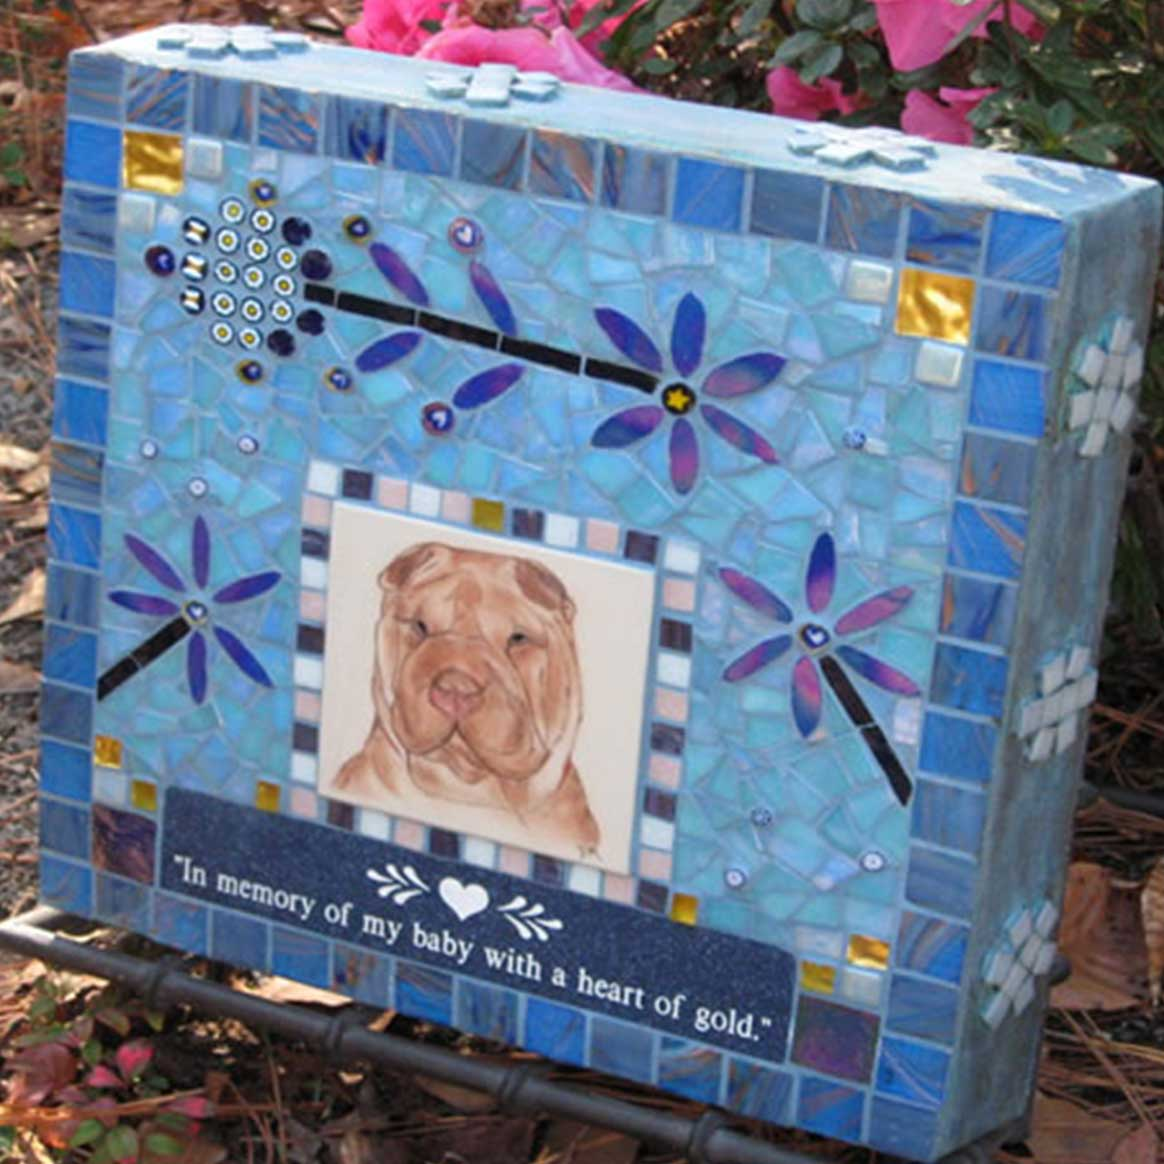 Mosaic Pet Portrait Memorial Stone of Dog with Flowers by Water's End Studio Artist Linda Solby